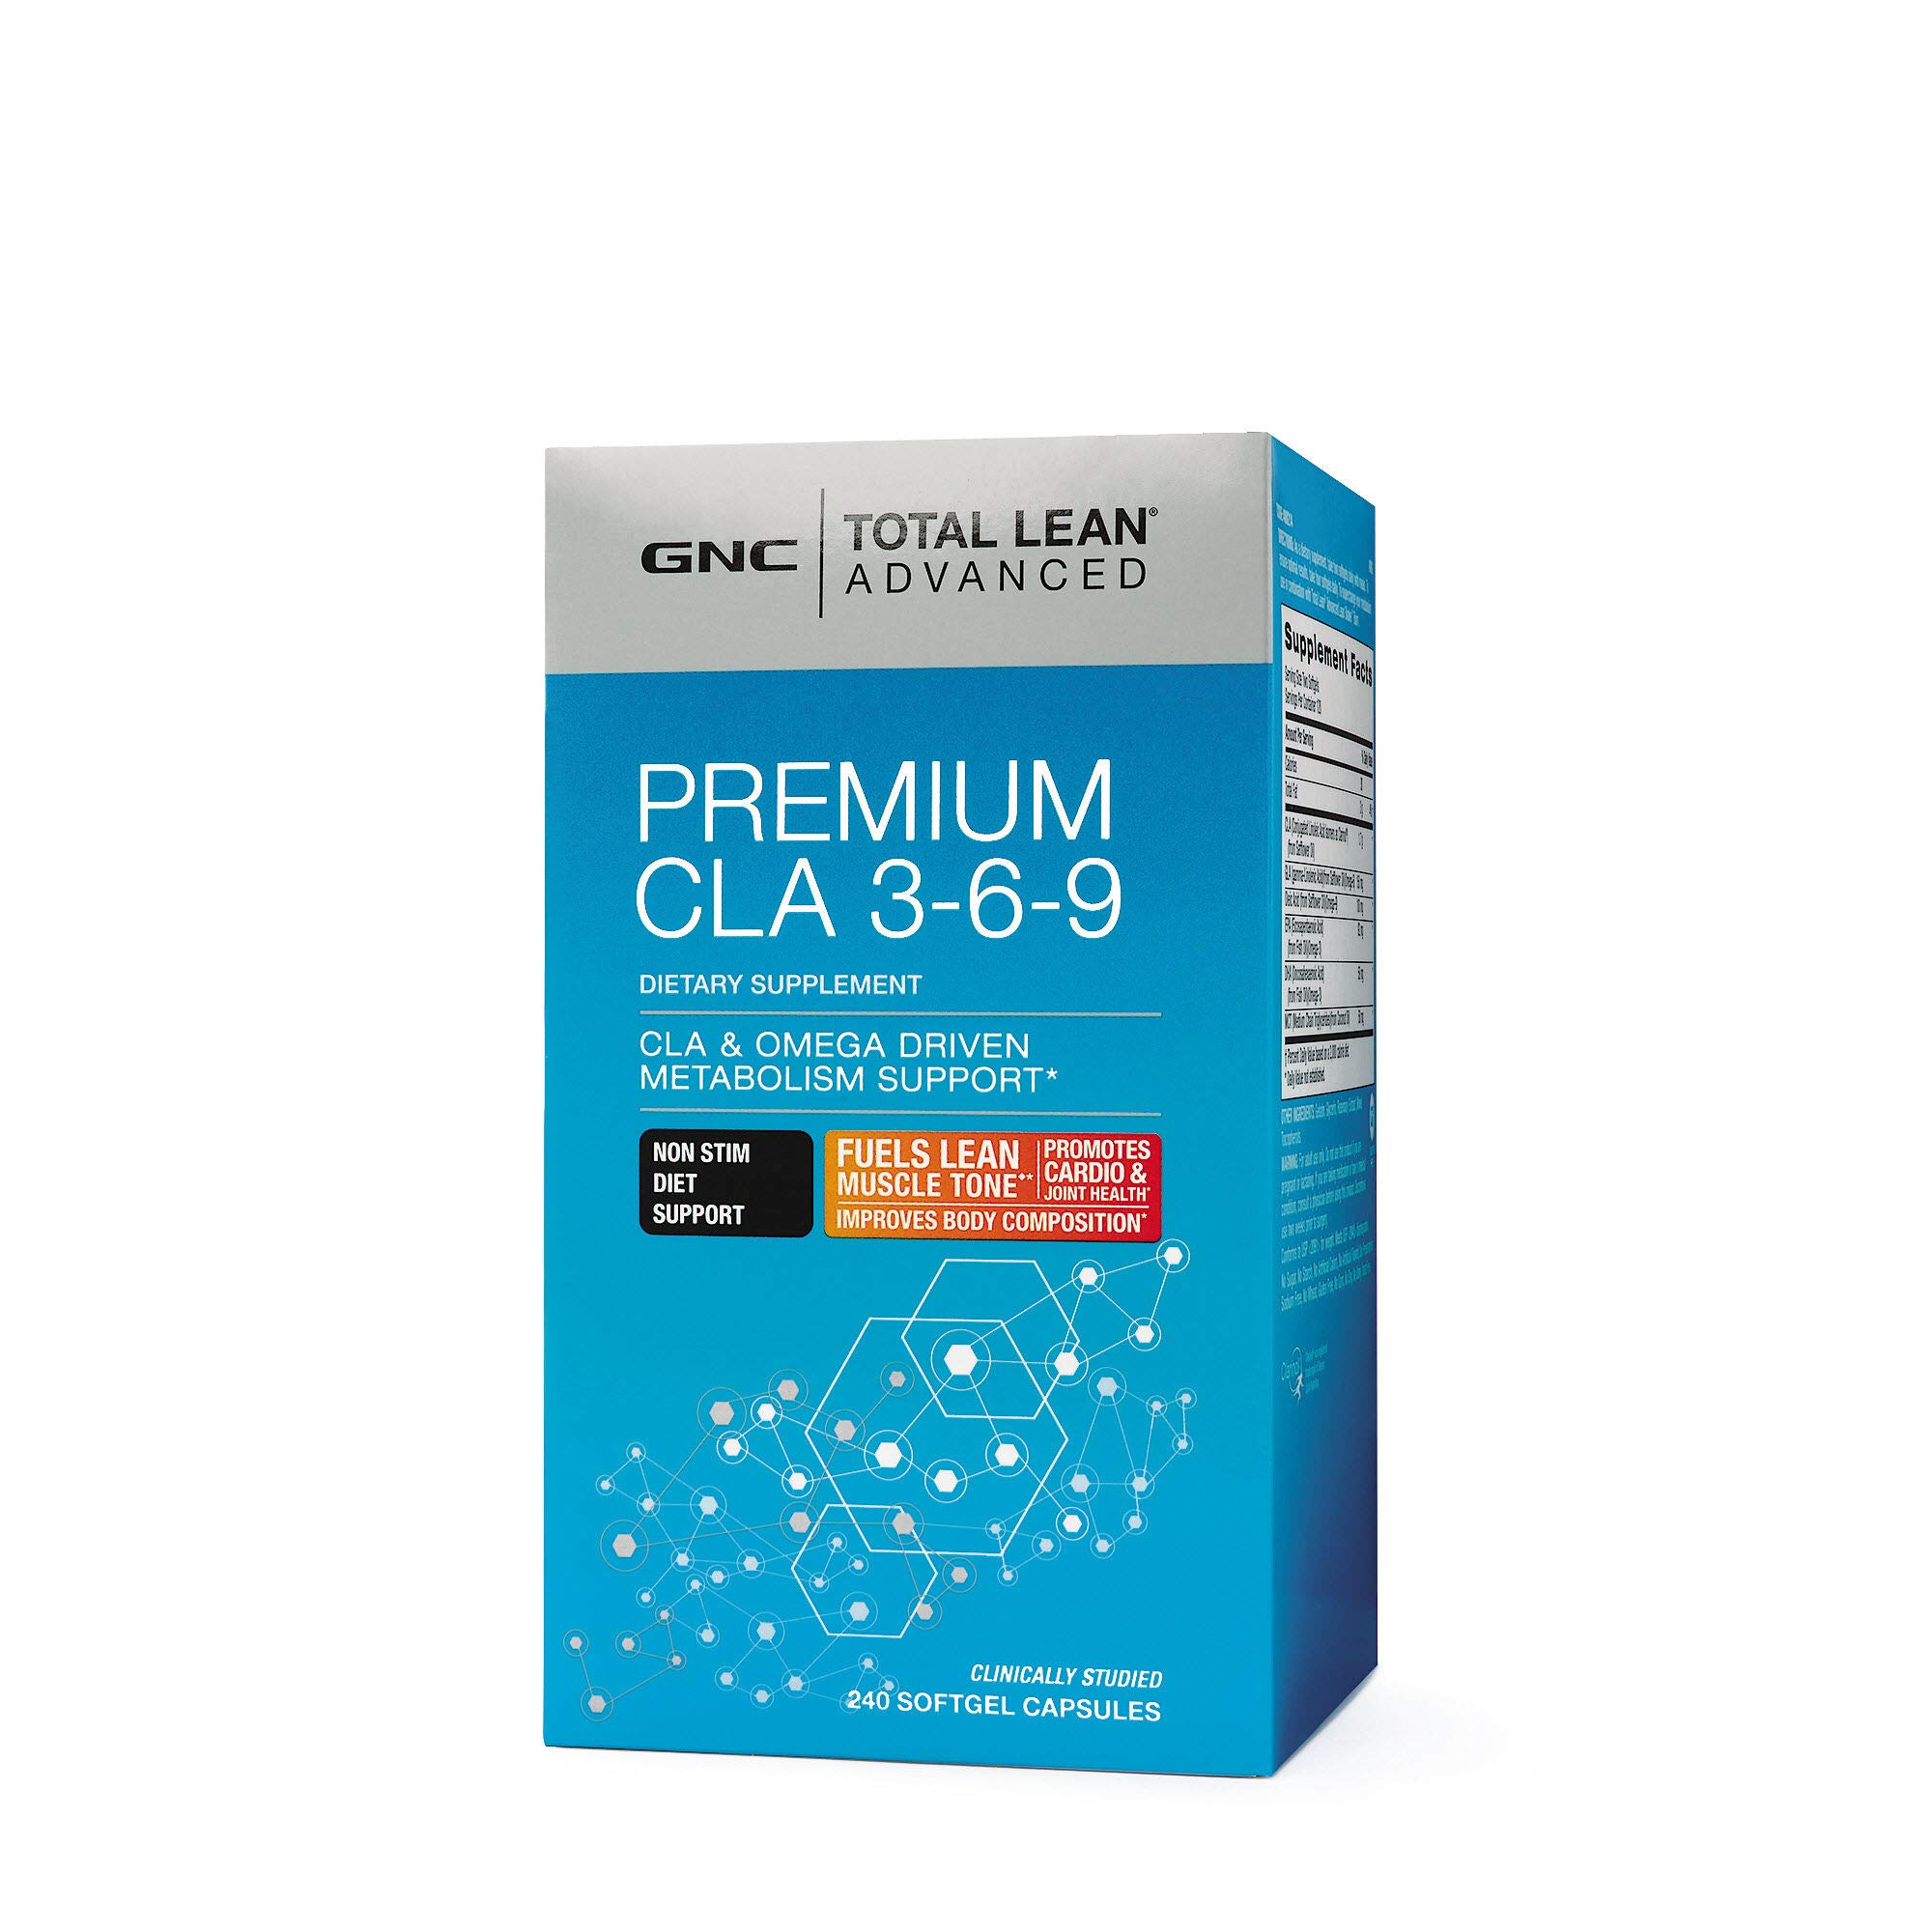 GNC Total Lean Advanced Premium CLA 3-6-9, 240 Capsules, Supports Exercise and Muscle Recovery by GNC (Image #1)